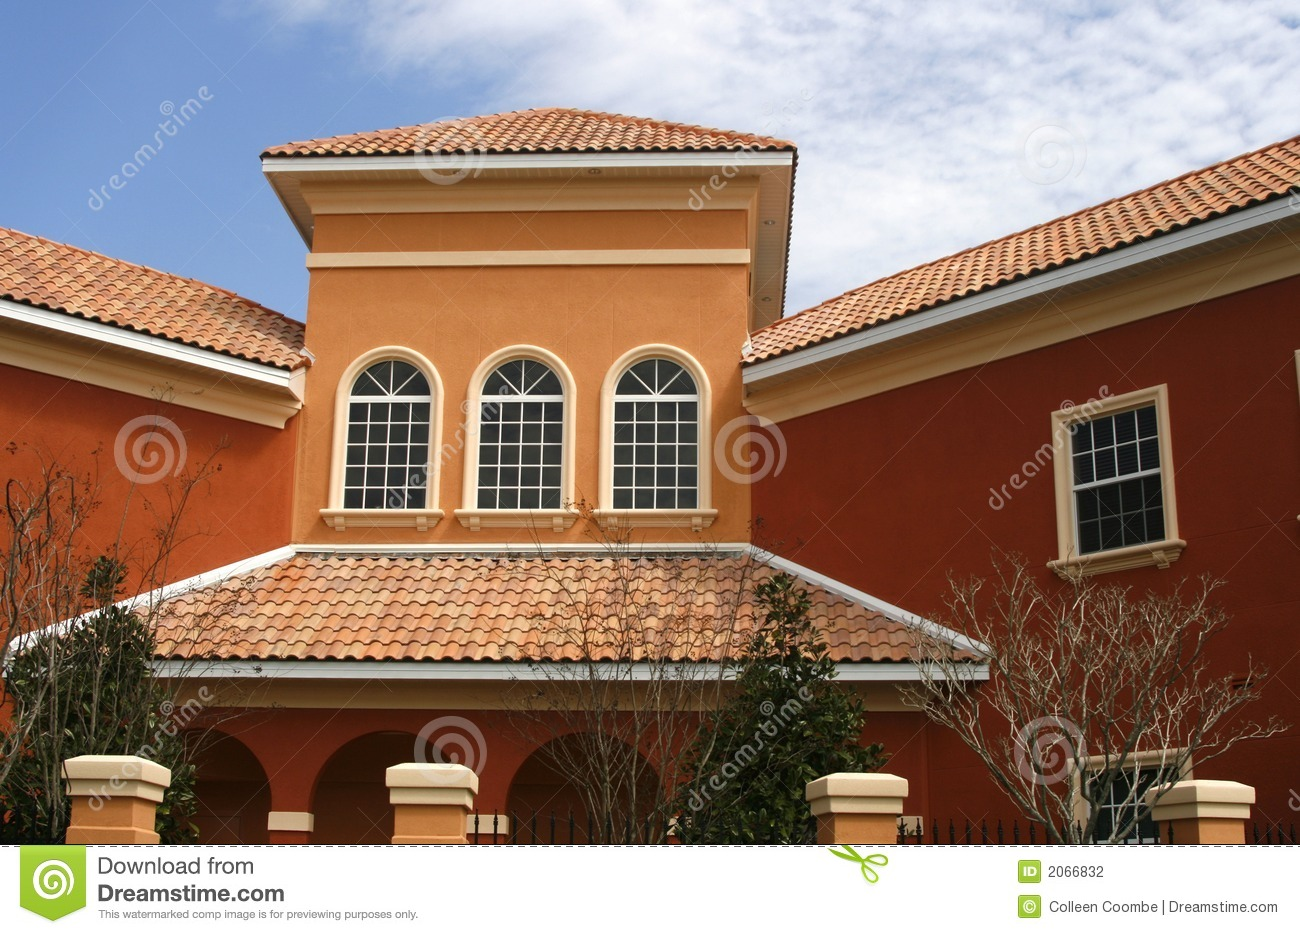 Download Colorful New Commercial Building Stock Photo - Image of arches, decorative: 2066832